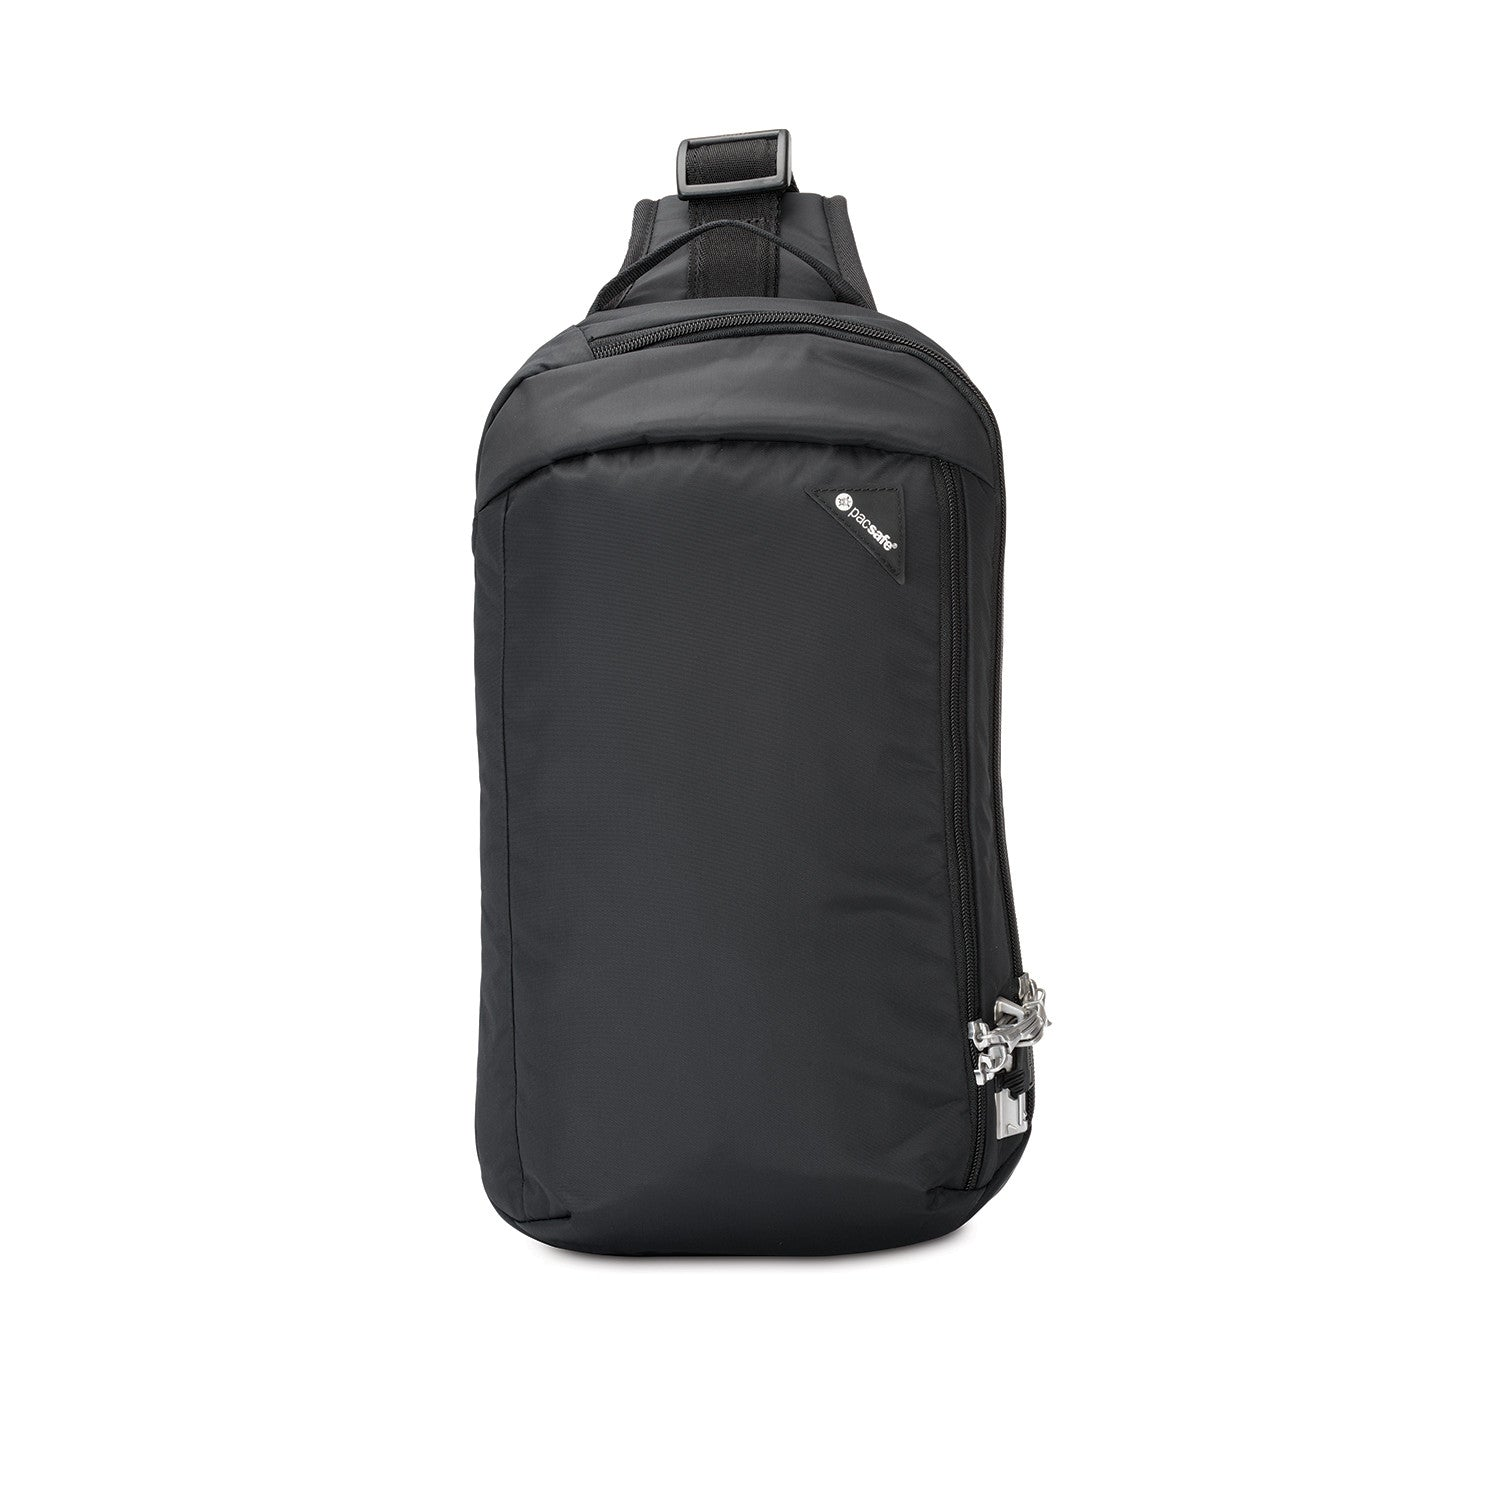 Pacsafe-Vibe 325 Anti-Theft Cross Body Pack-RFID Bag-Black-Gearaholic.com.sg